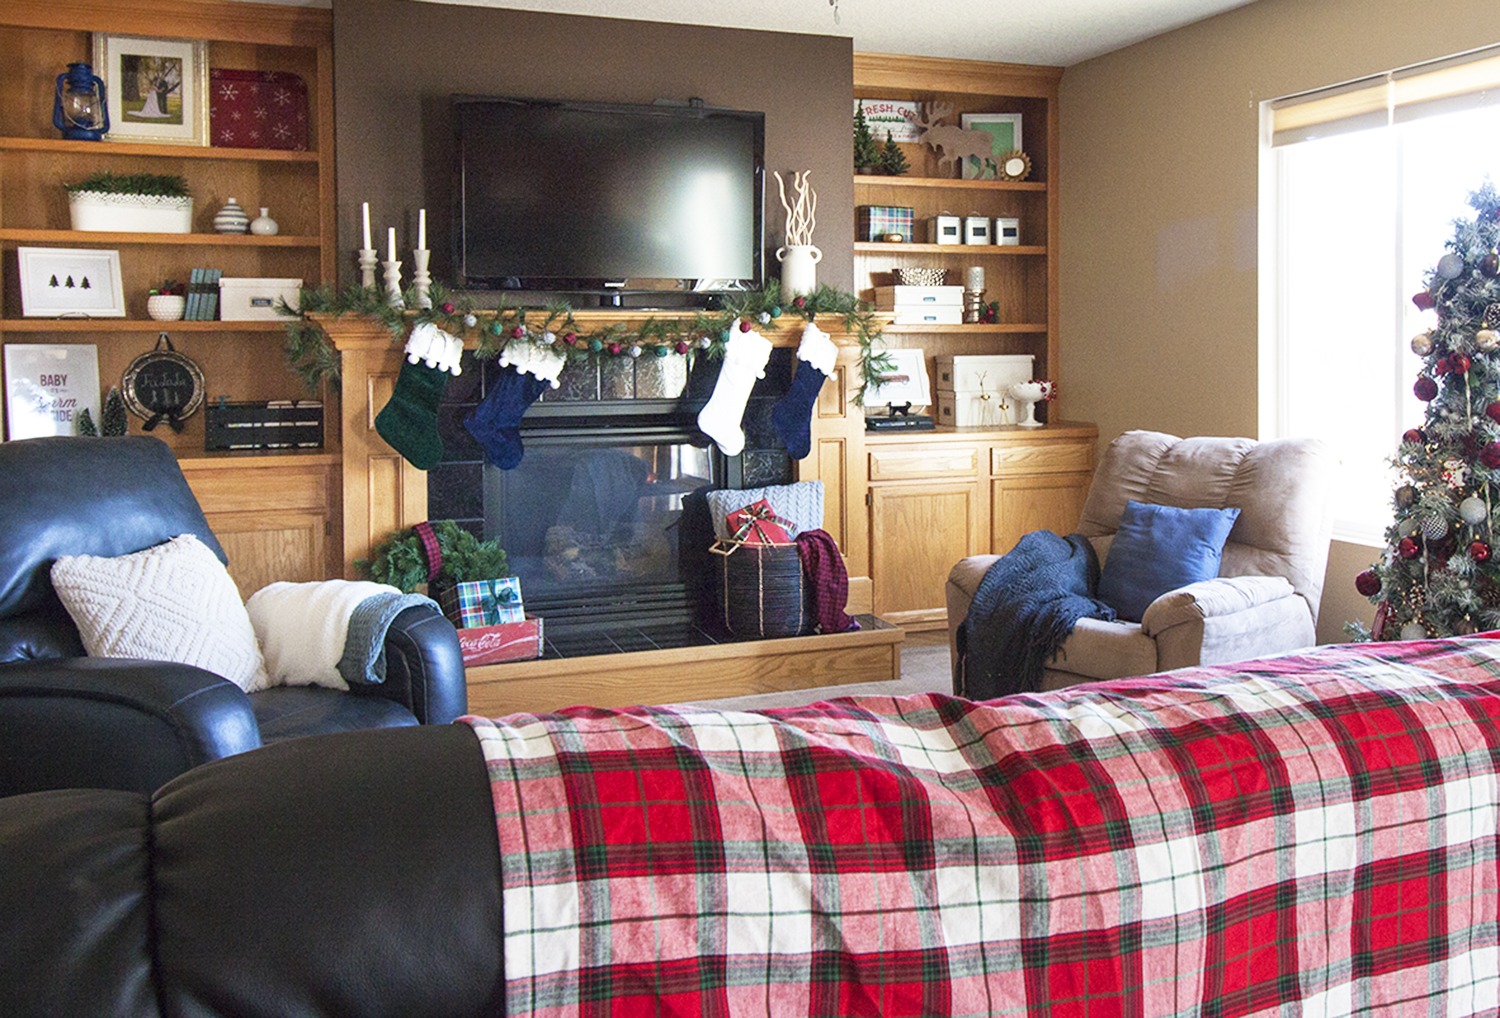 What a beautiful Christmas living room! Love the red plaid blanket and all of the Christmas decor on the built in shelves! Pretty Christmas mantel decor as well. christmas home tour | holiday homes | christmas house | christmas tree pictures | christmas mantel | christmas living room | christmas blog home tour